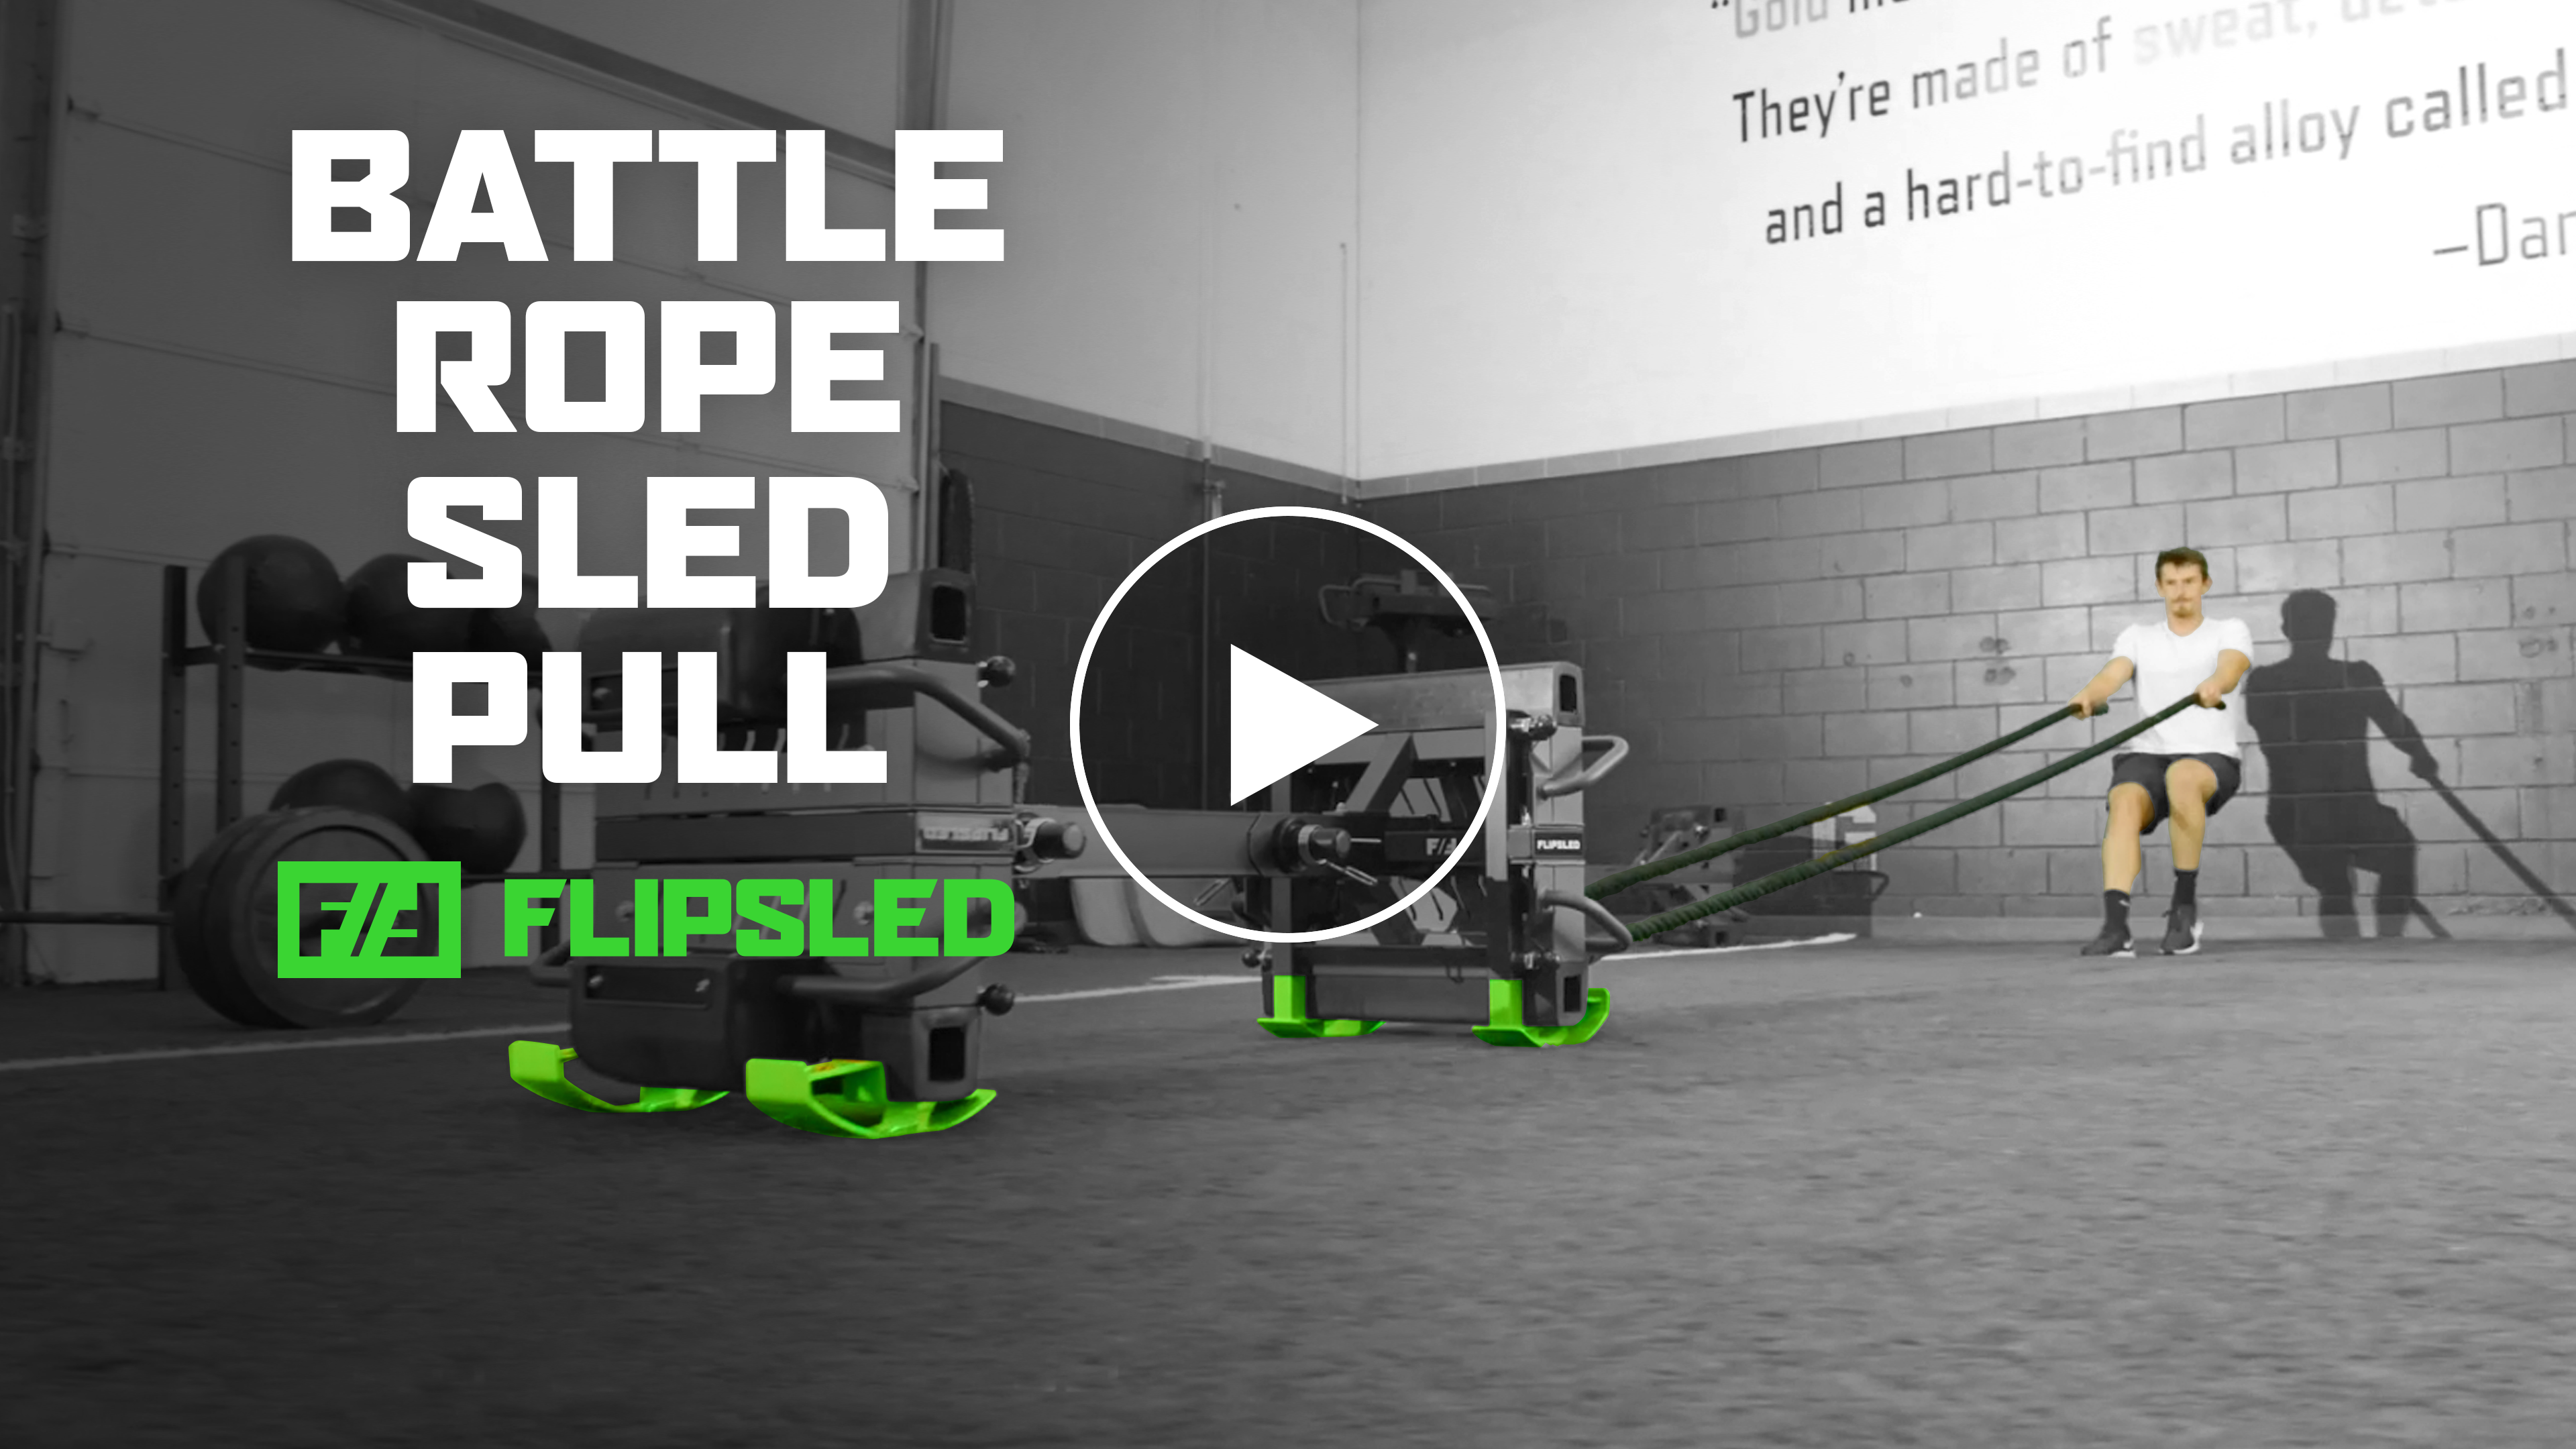 Move of the Week: Battle Rope Sled Pull